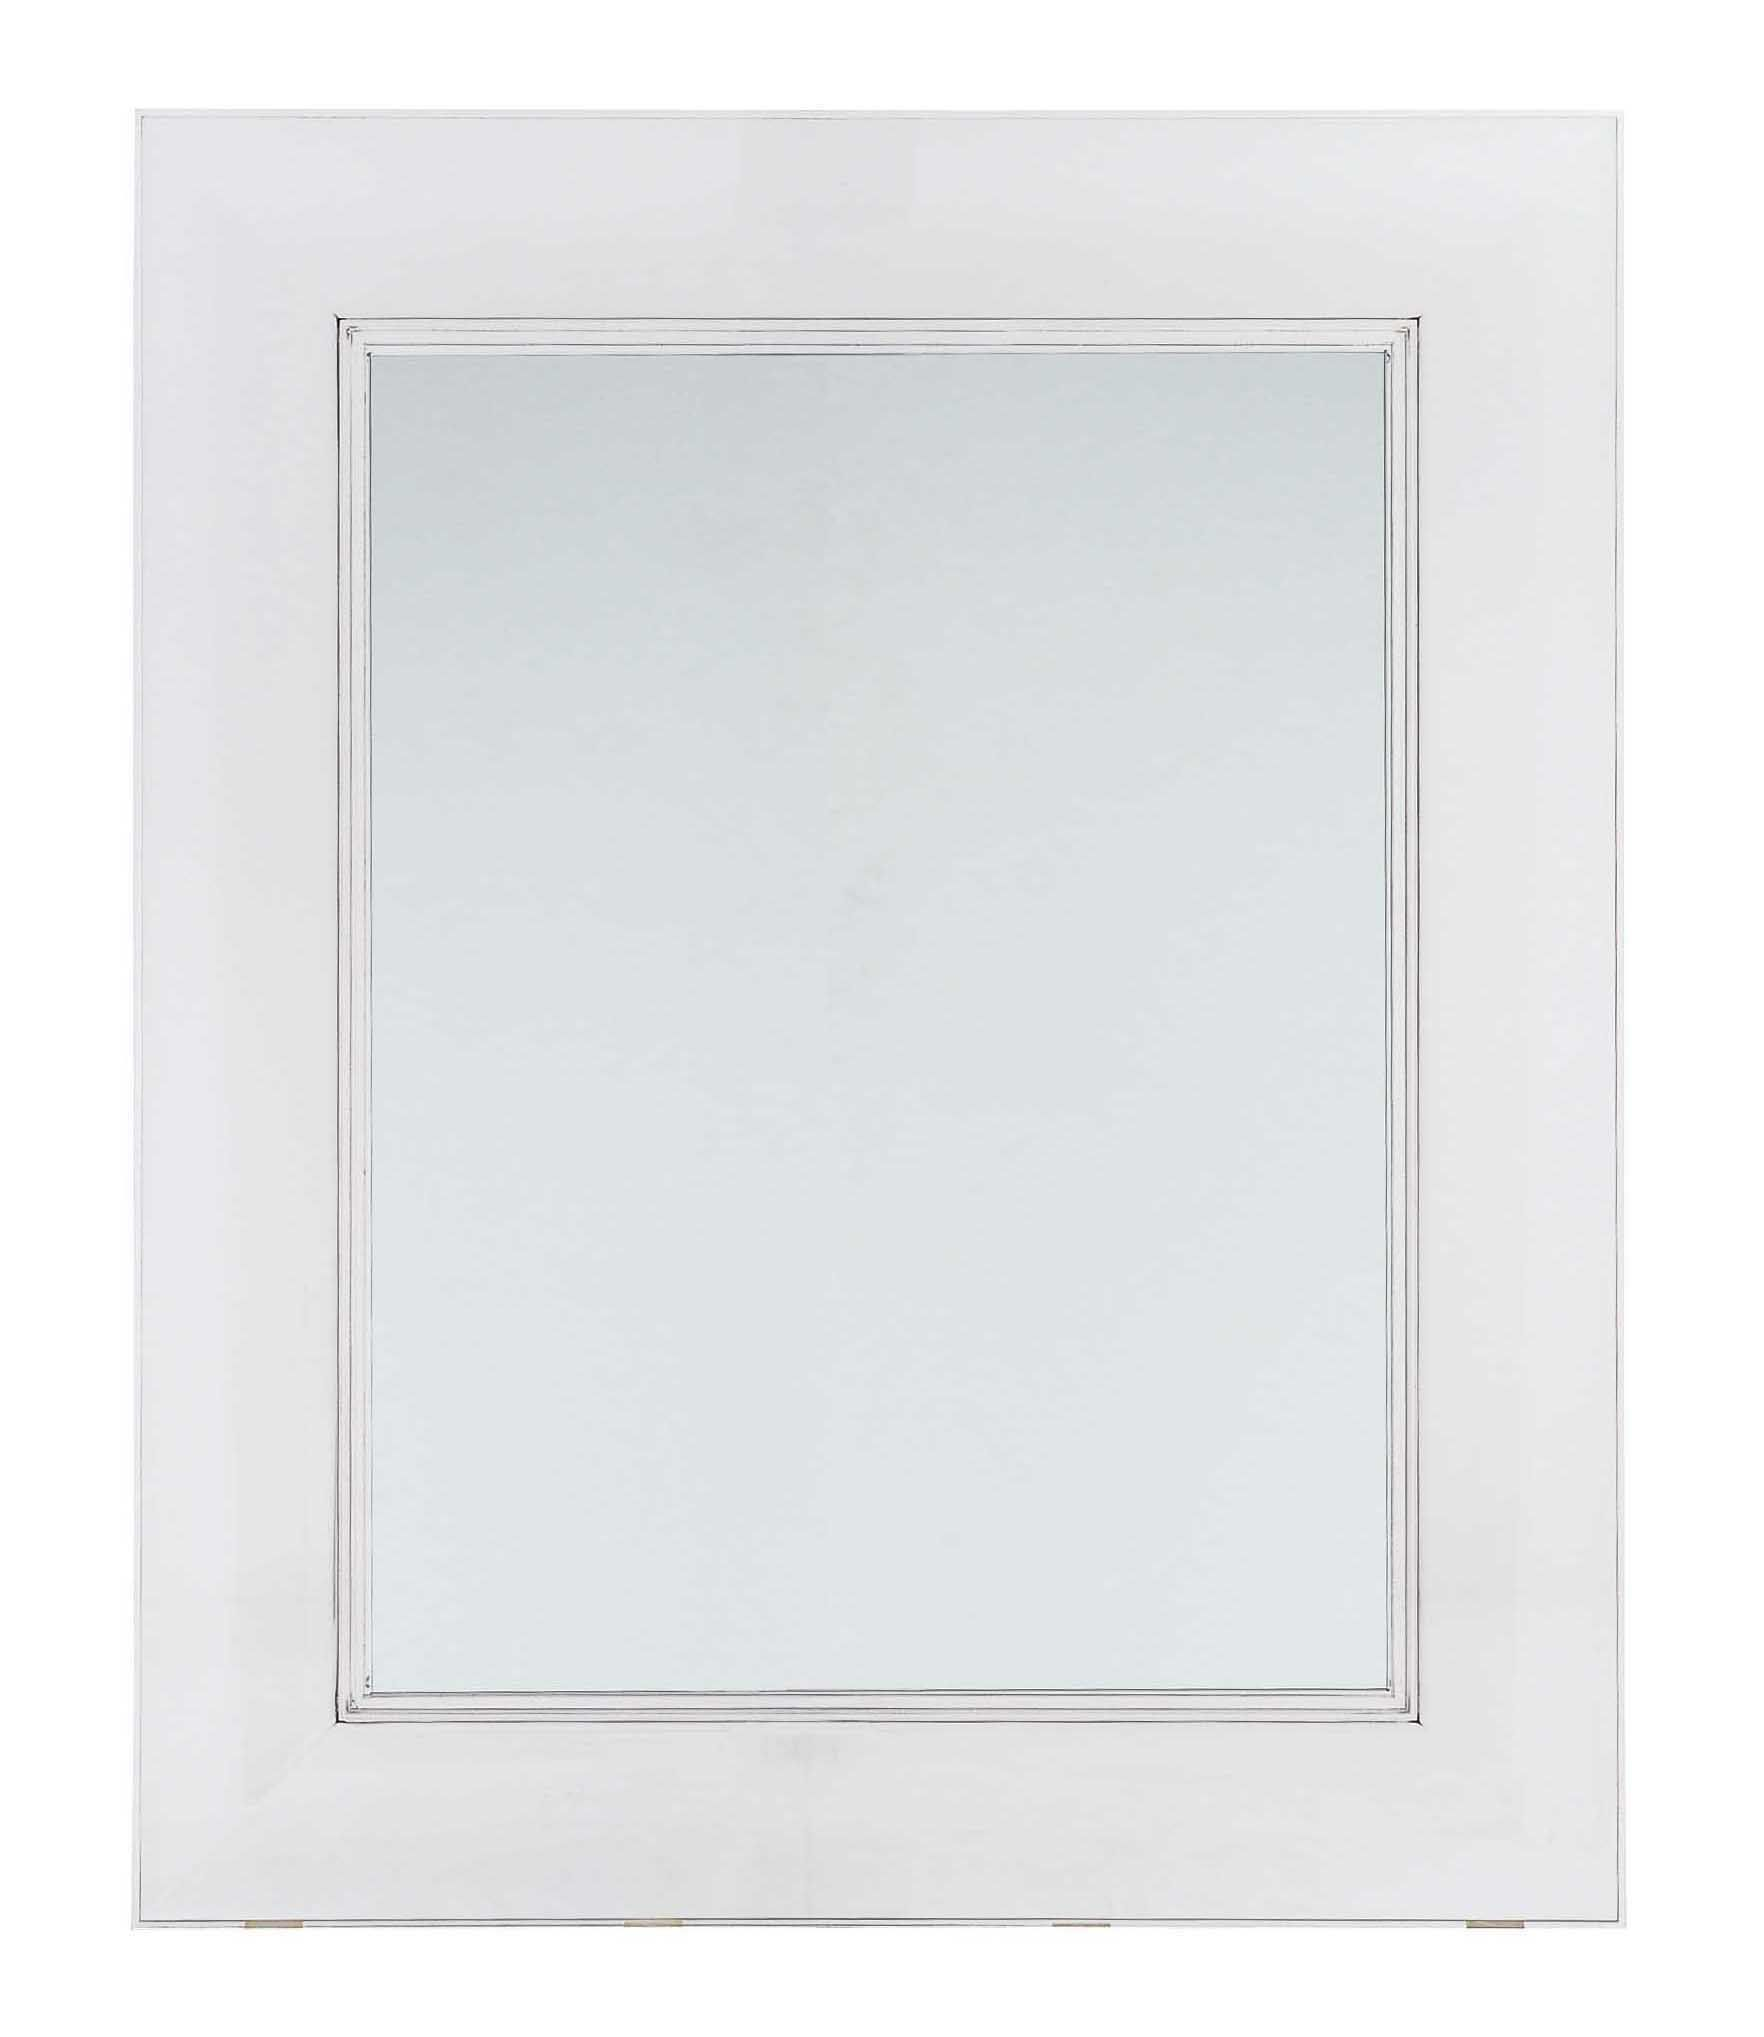 Furniture - Miscellaneous furniture - Francois Ghost Wall mirror - 65 x 79 cm by Kartell - Cristal - Polycarbonate